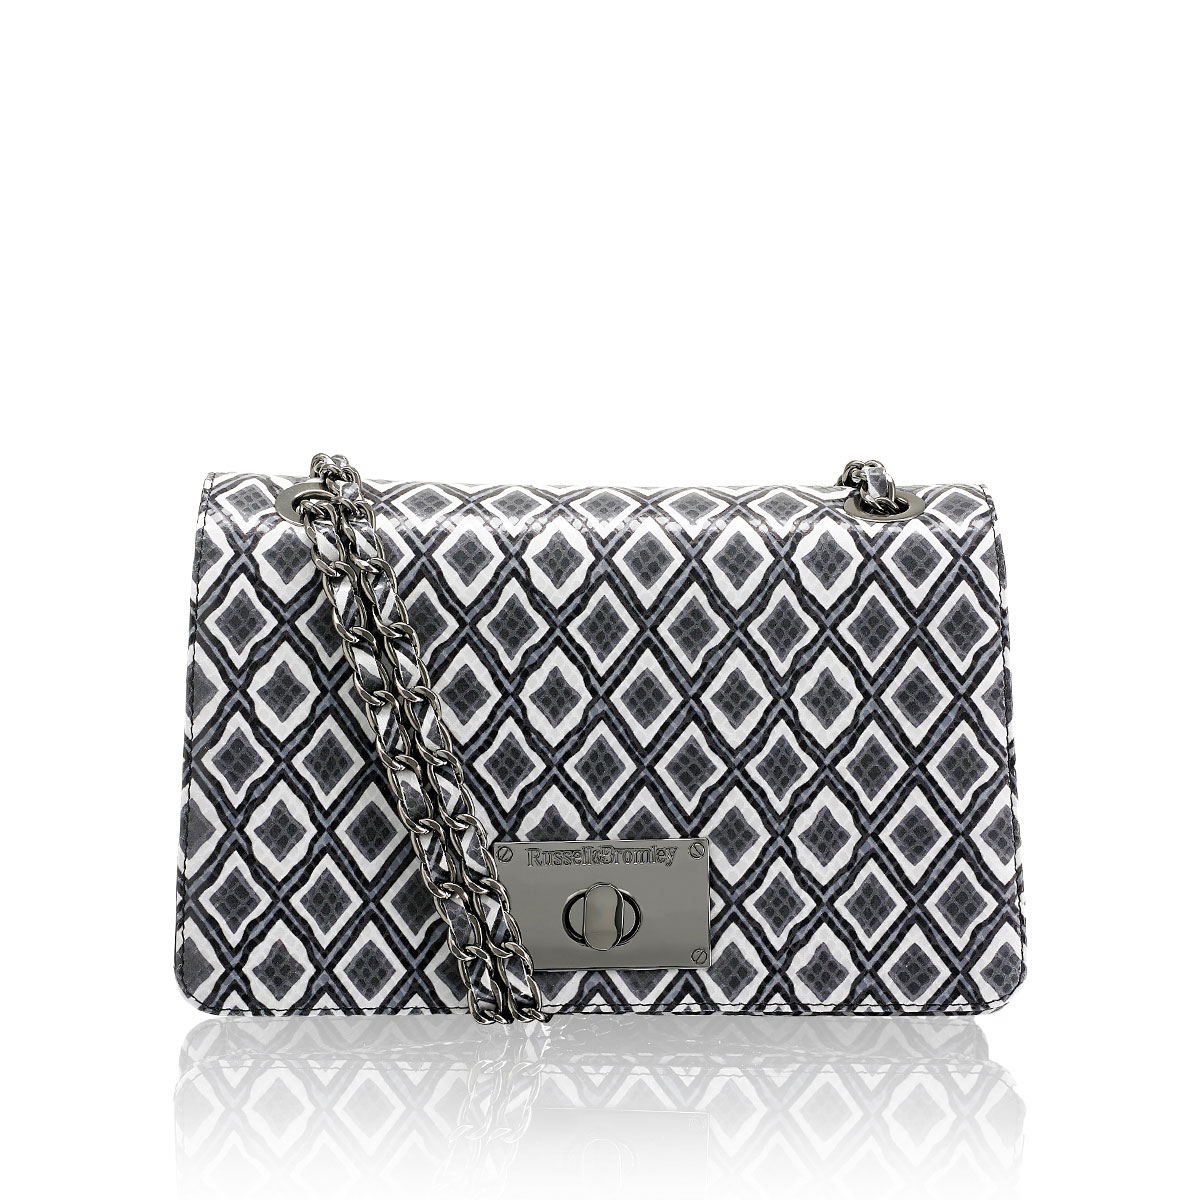 Russell And Bromley DIANA Chain Handle Bag